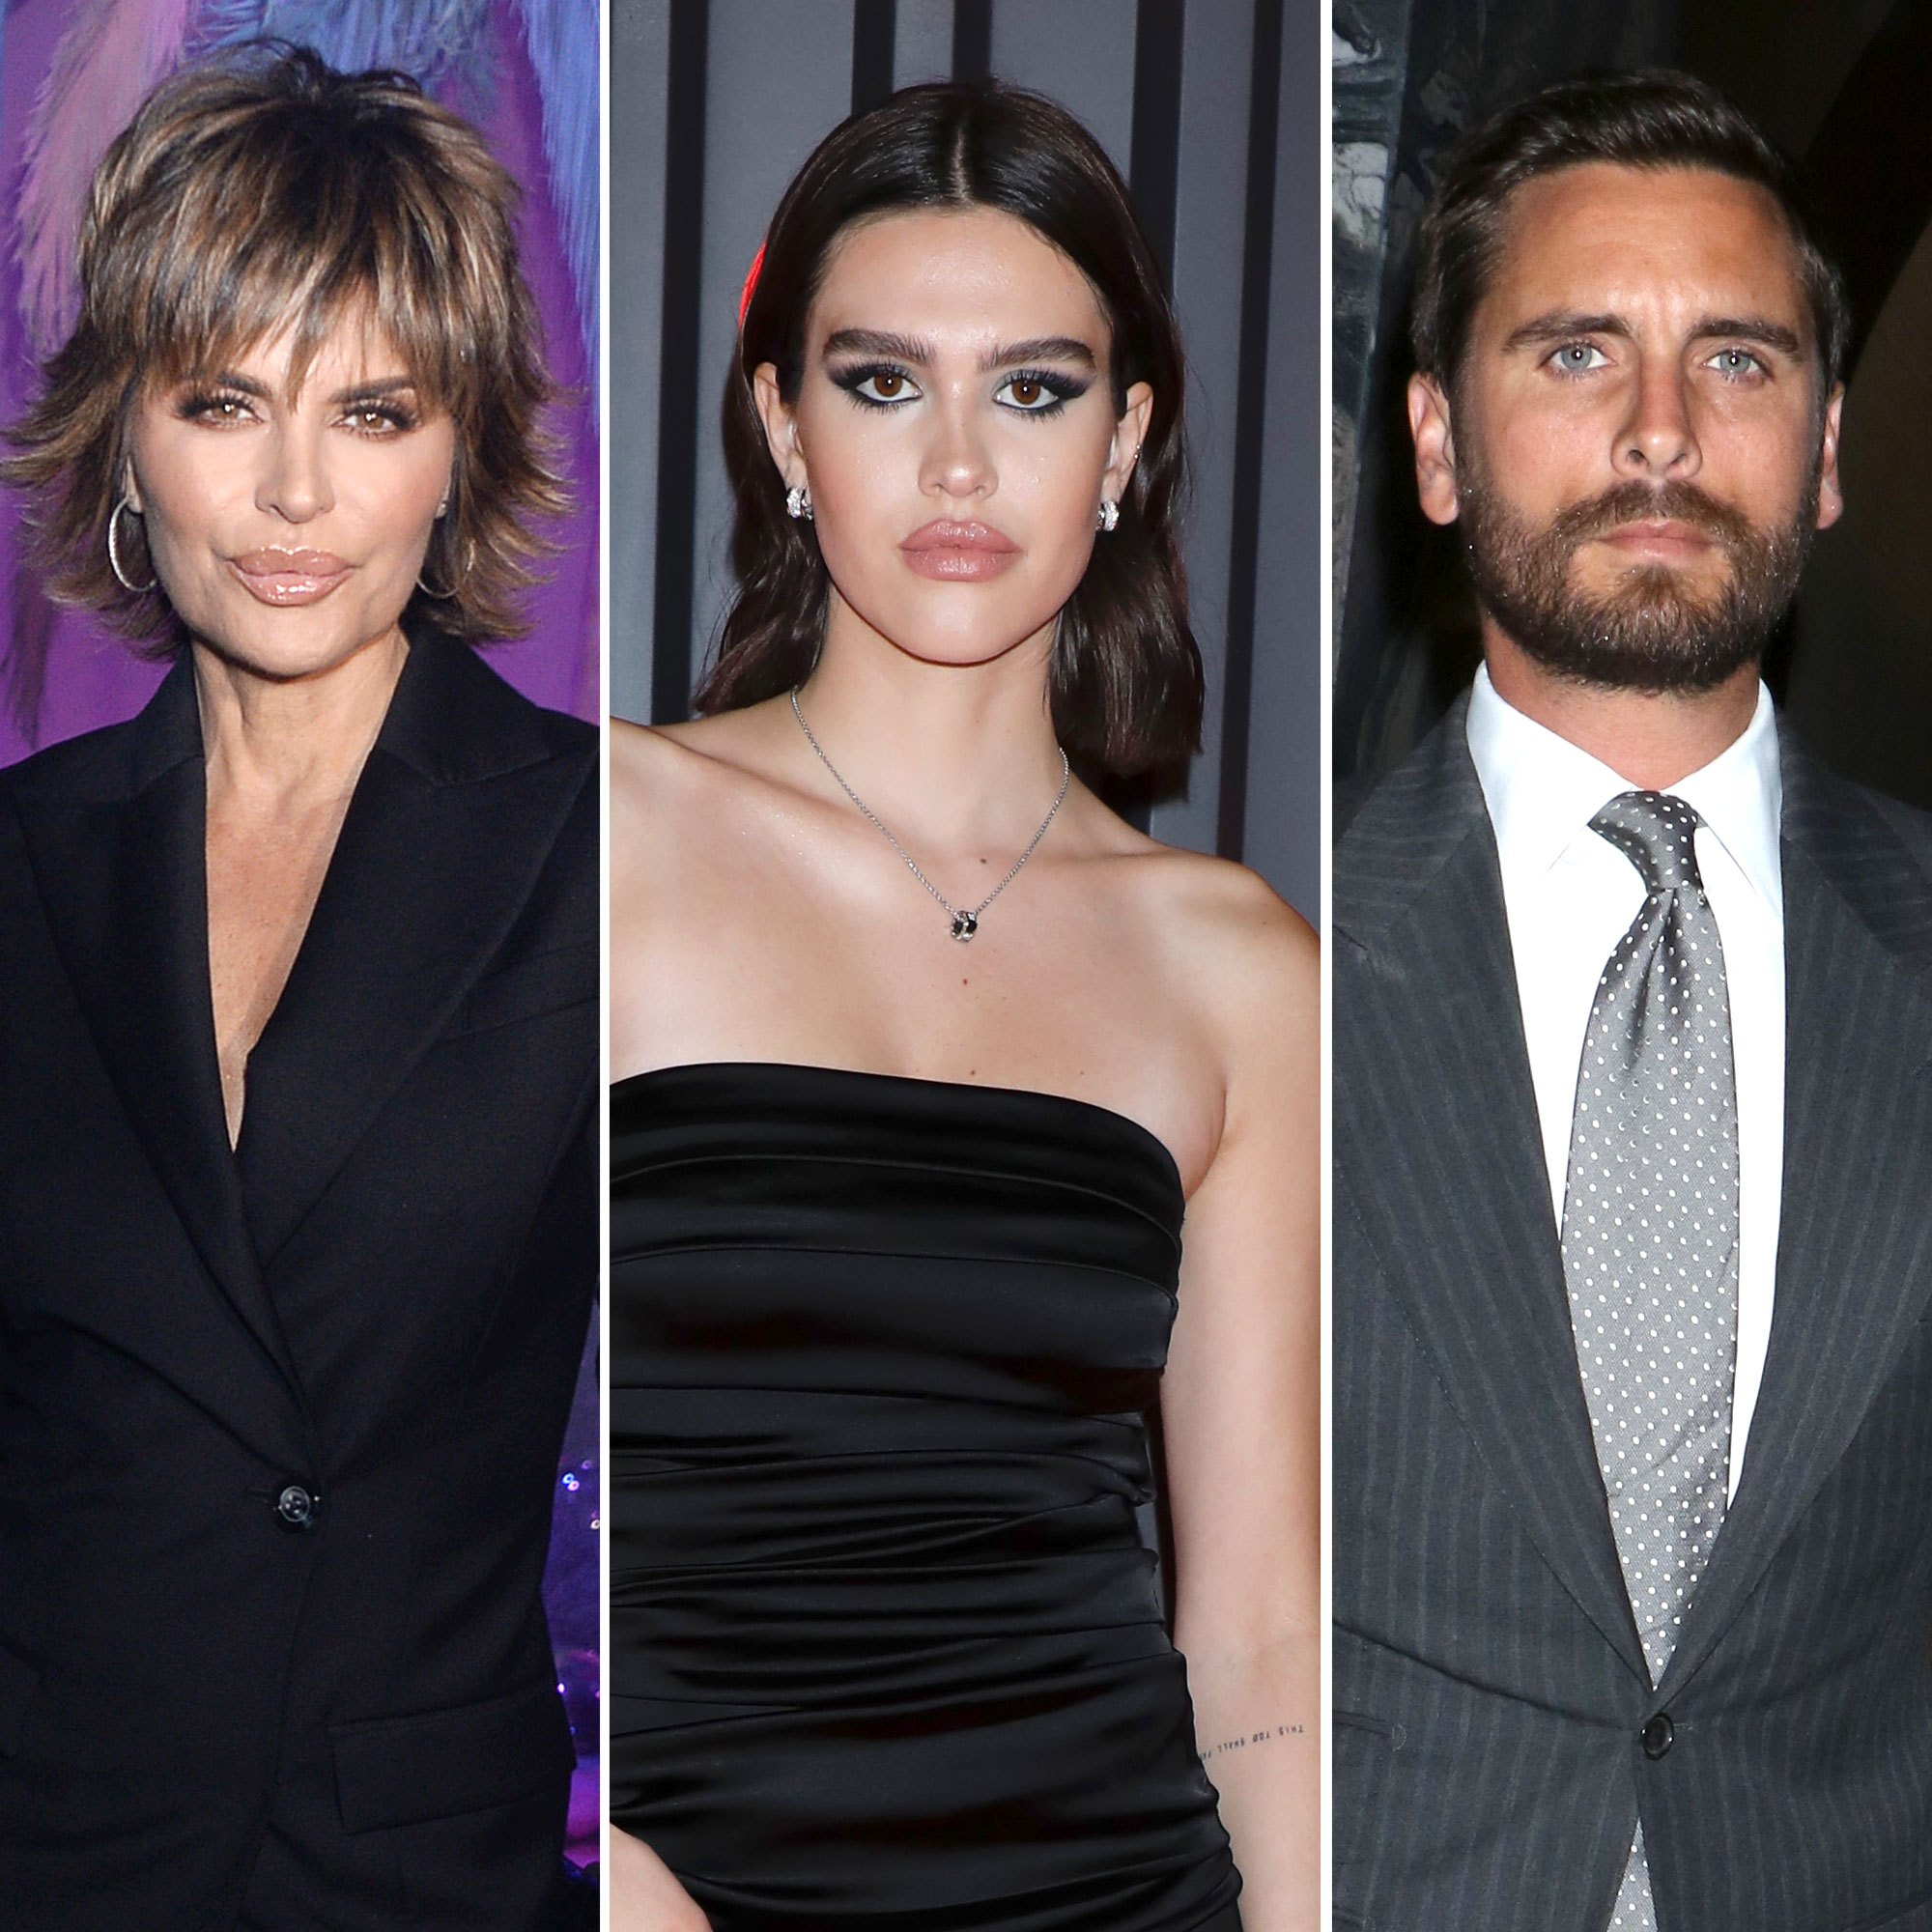 Real Housewives of Beverly Hills Star Lisa Rinna Finds A Hotter And Younger Boyfriend For Amelia Hamlin!